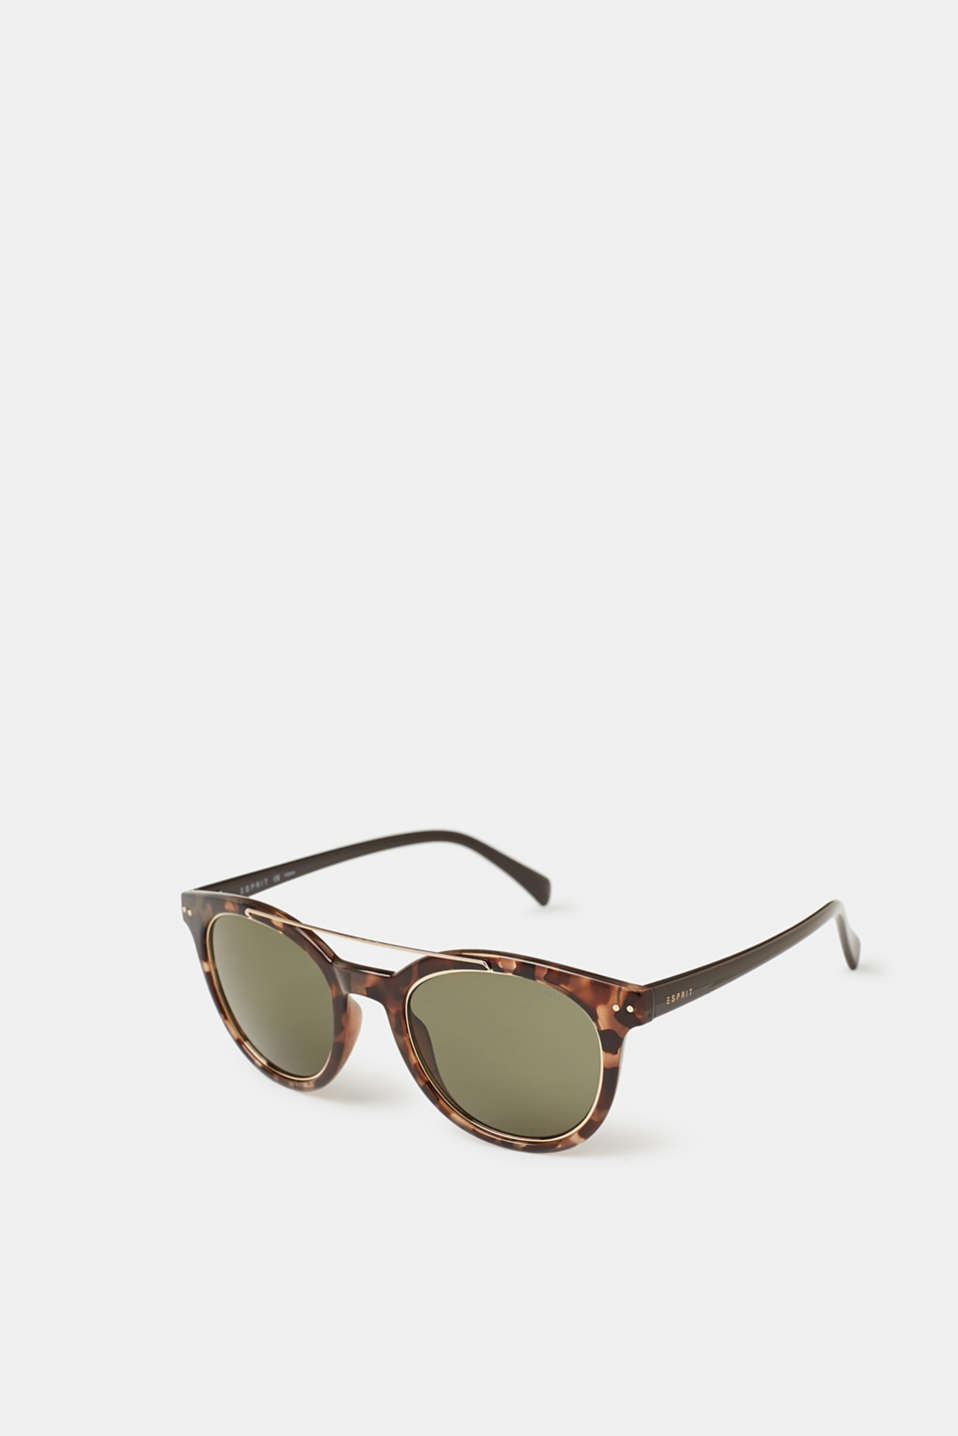 These synthetic sunglasses with fine metal temples are an inspired fashion piece in a modern, vintage look.